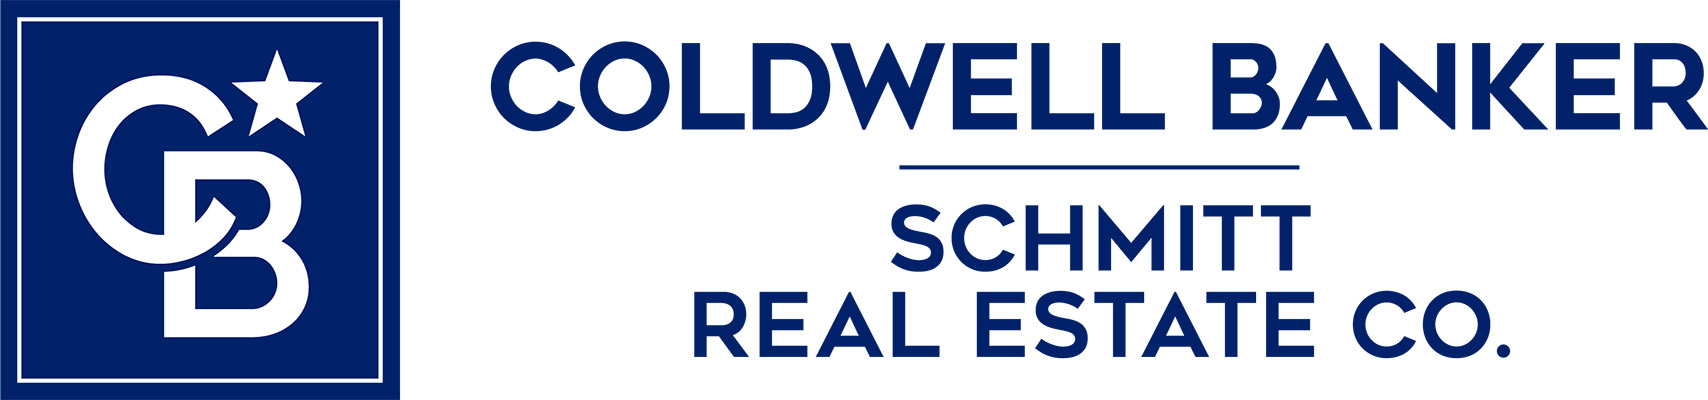 Florida Keys Home Team - Coldwell Banker Schmitt Logo